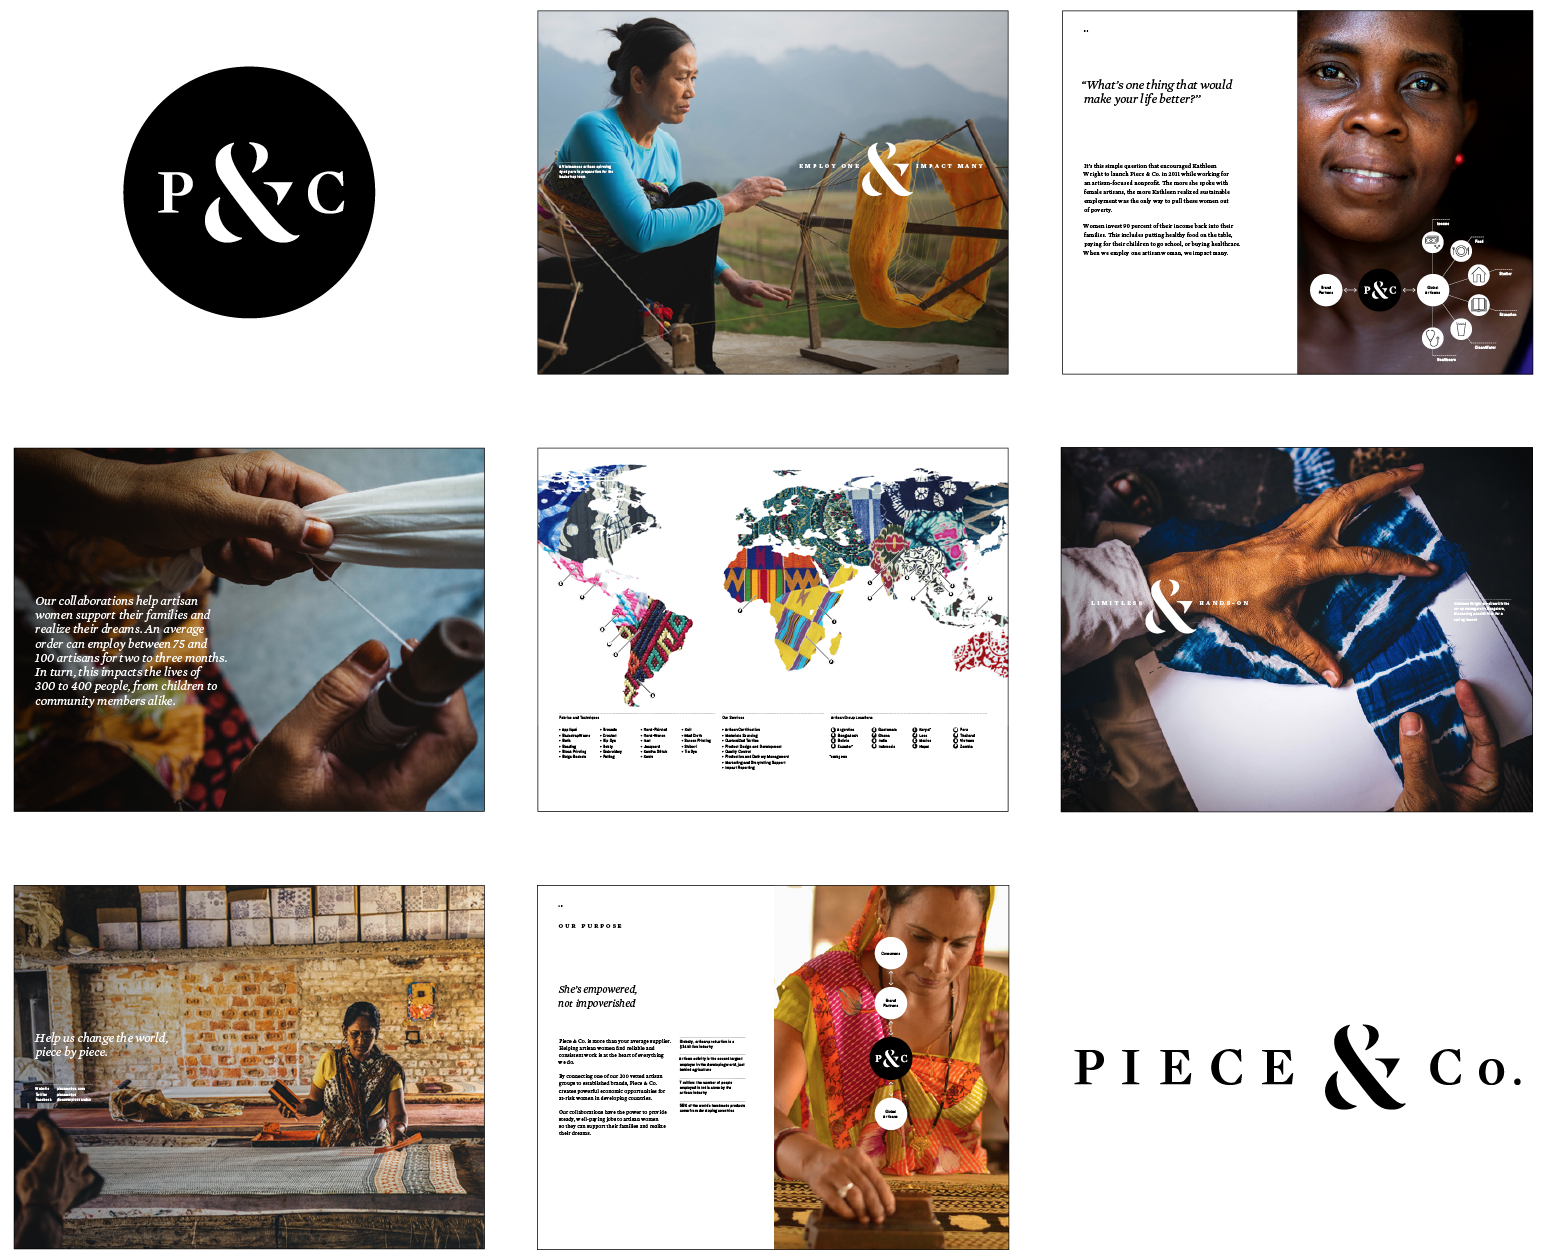 To help Piece & Co. communicate their mission of social empowerment, we partnered with them to create a brand marketing guide to facilitate conversations between staff, clients and suppliers.  Learn more  >